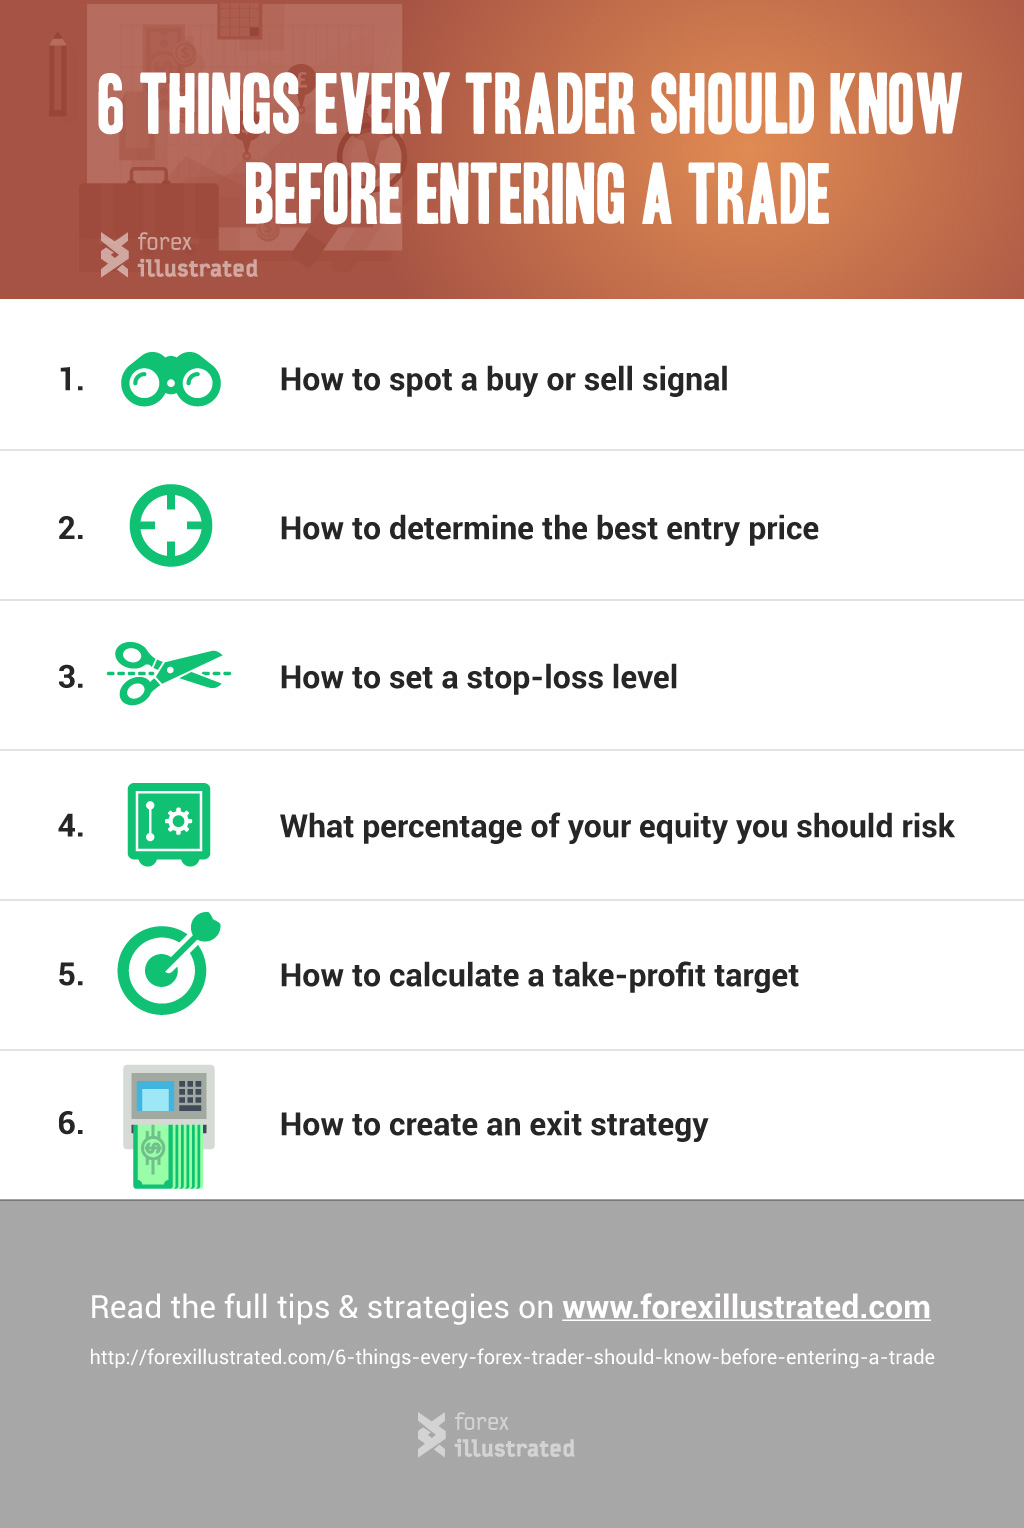 six-things-every-forex-stock-trader-must-know-how-to-spot-buy-sell-signal-how-to-determine-buy-sell-signal-set-up-stop-loss-level-what-percentage-of-equity-calculate-take-profit-target-create-exit-strategy